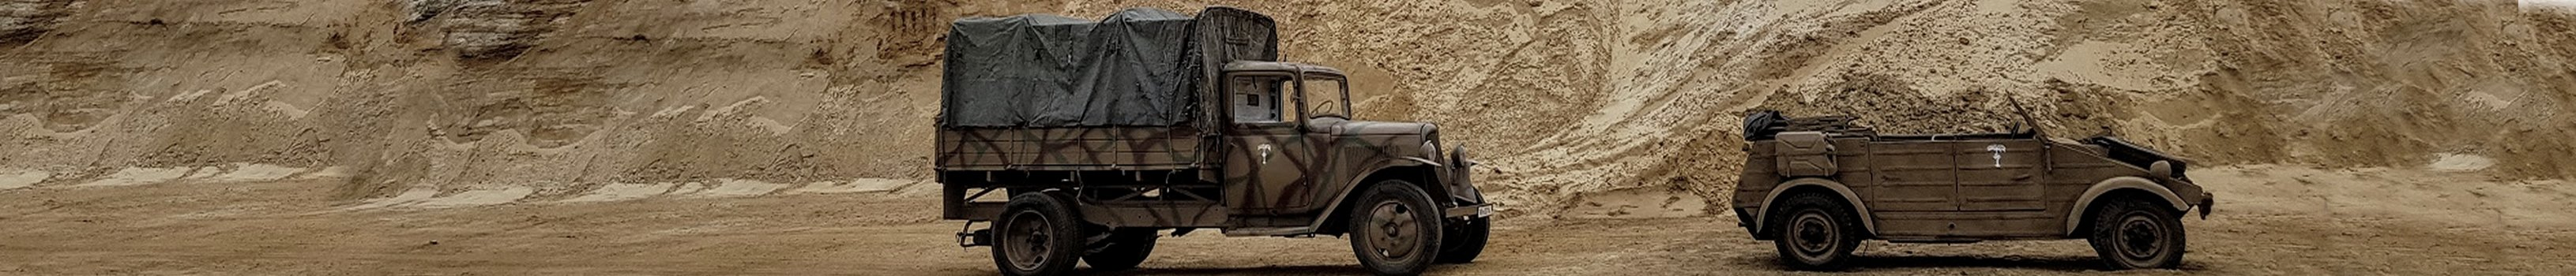 German ww2 vehicles and supporting artists for film tv hire_edited1